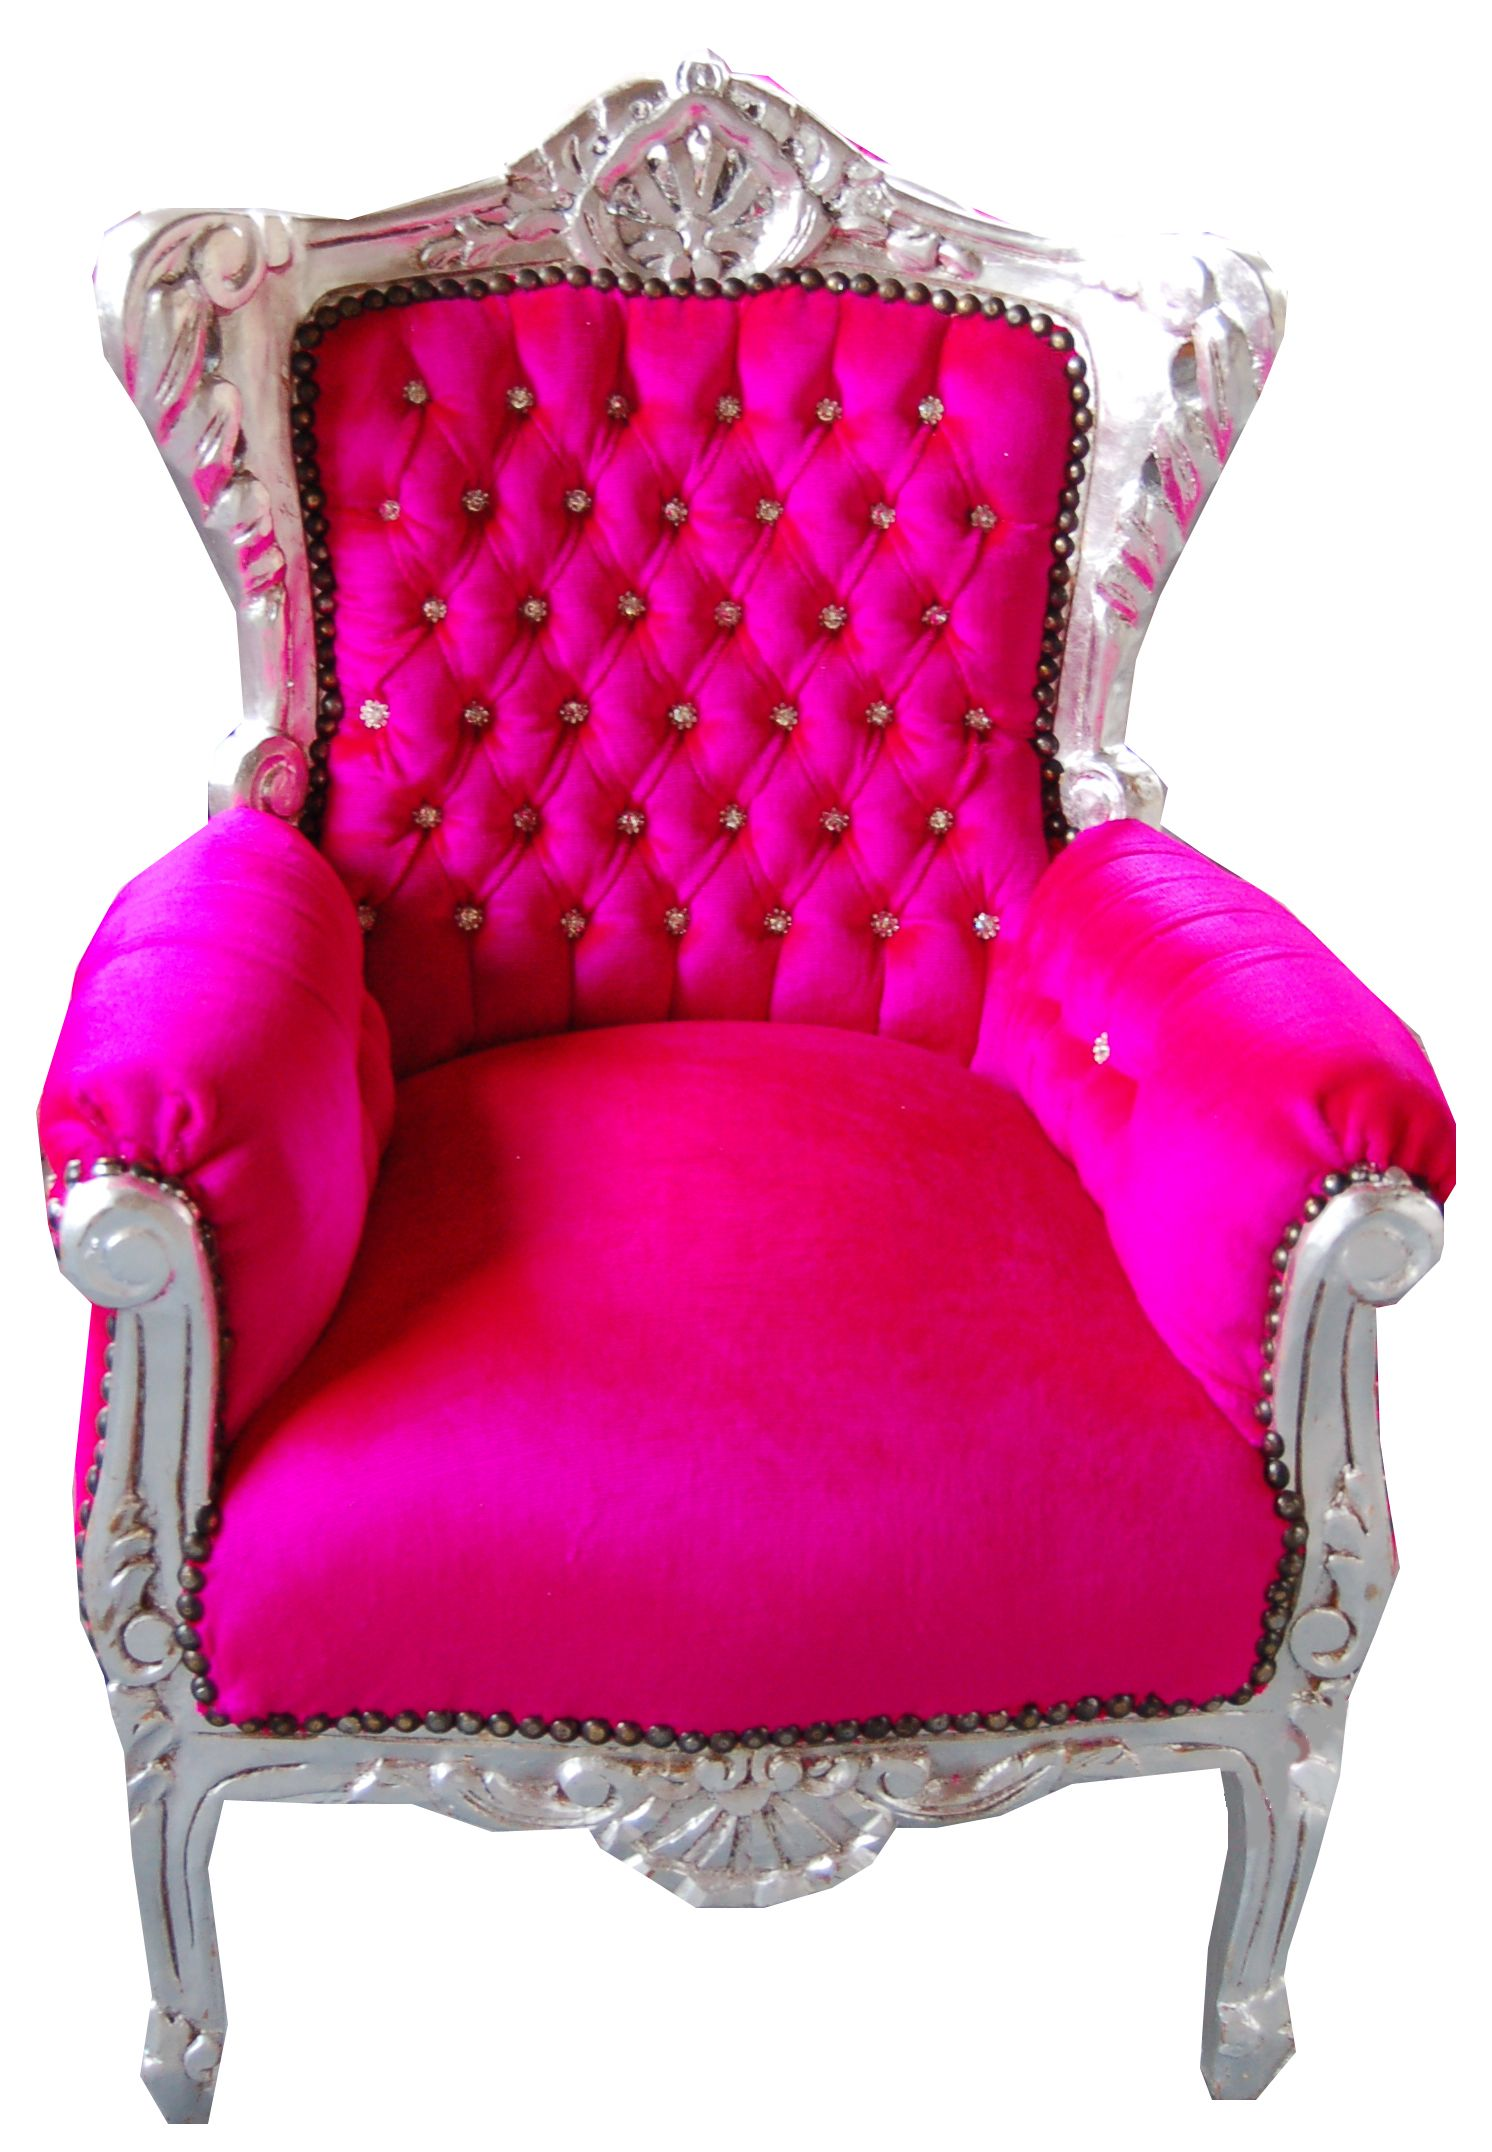 Hot pink room designs cool chairs for cool kids by for Cool furniture for kids